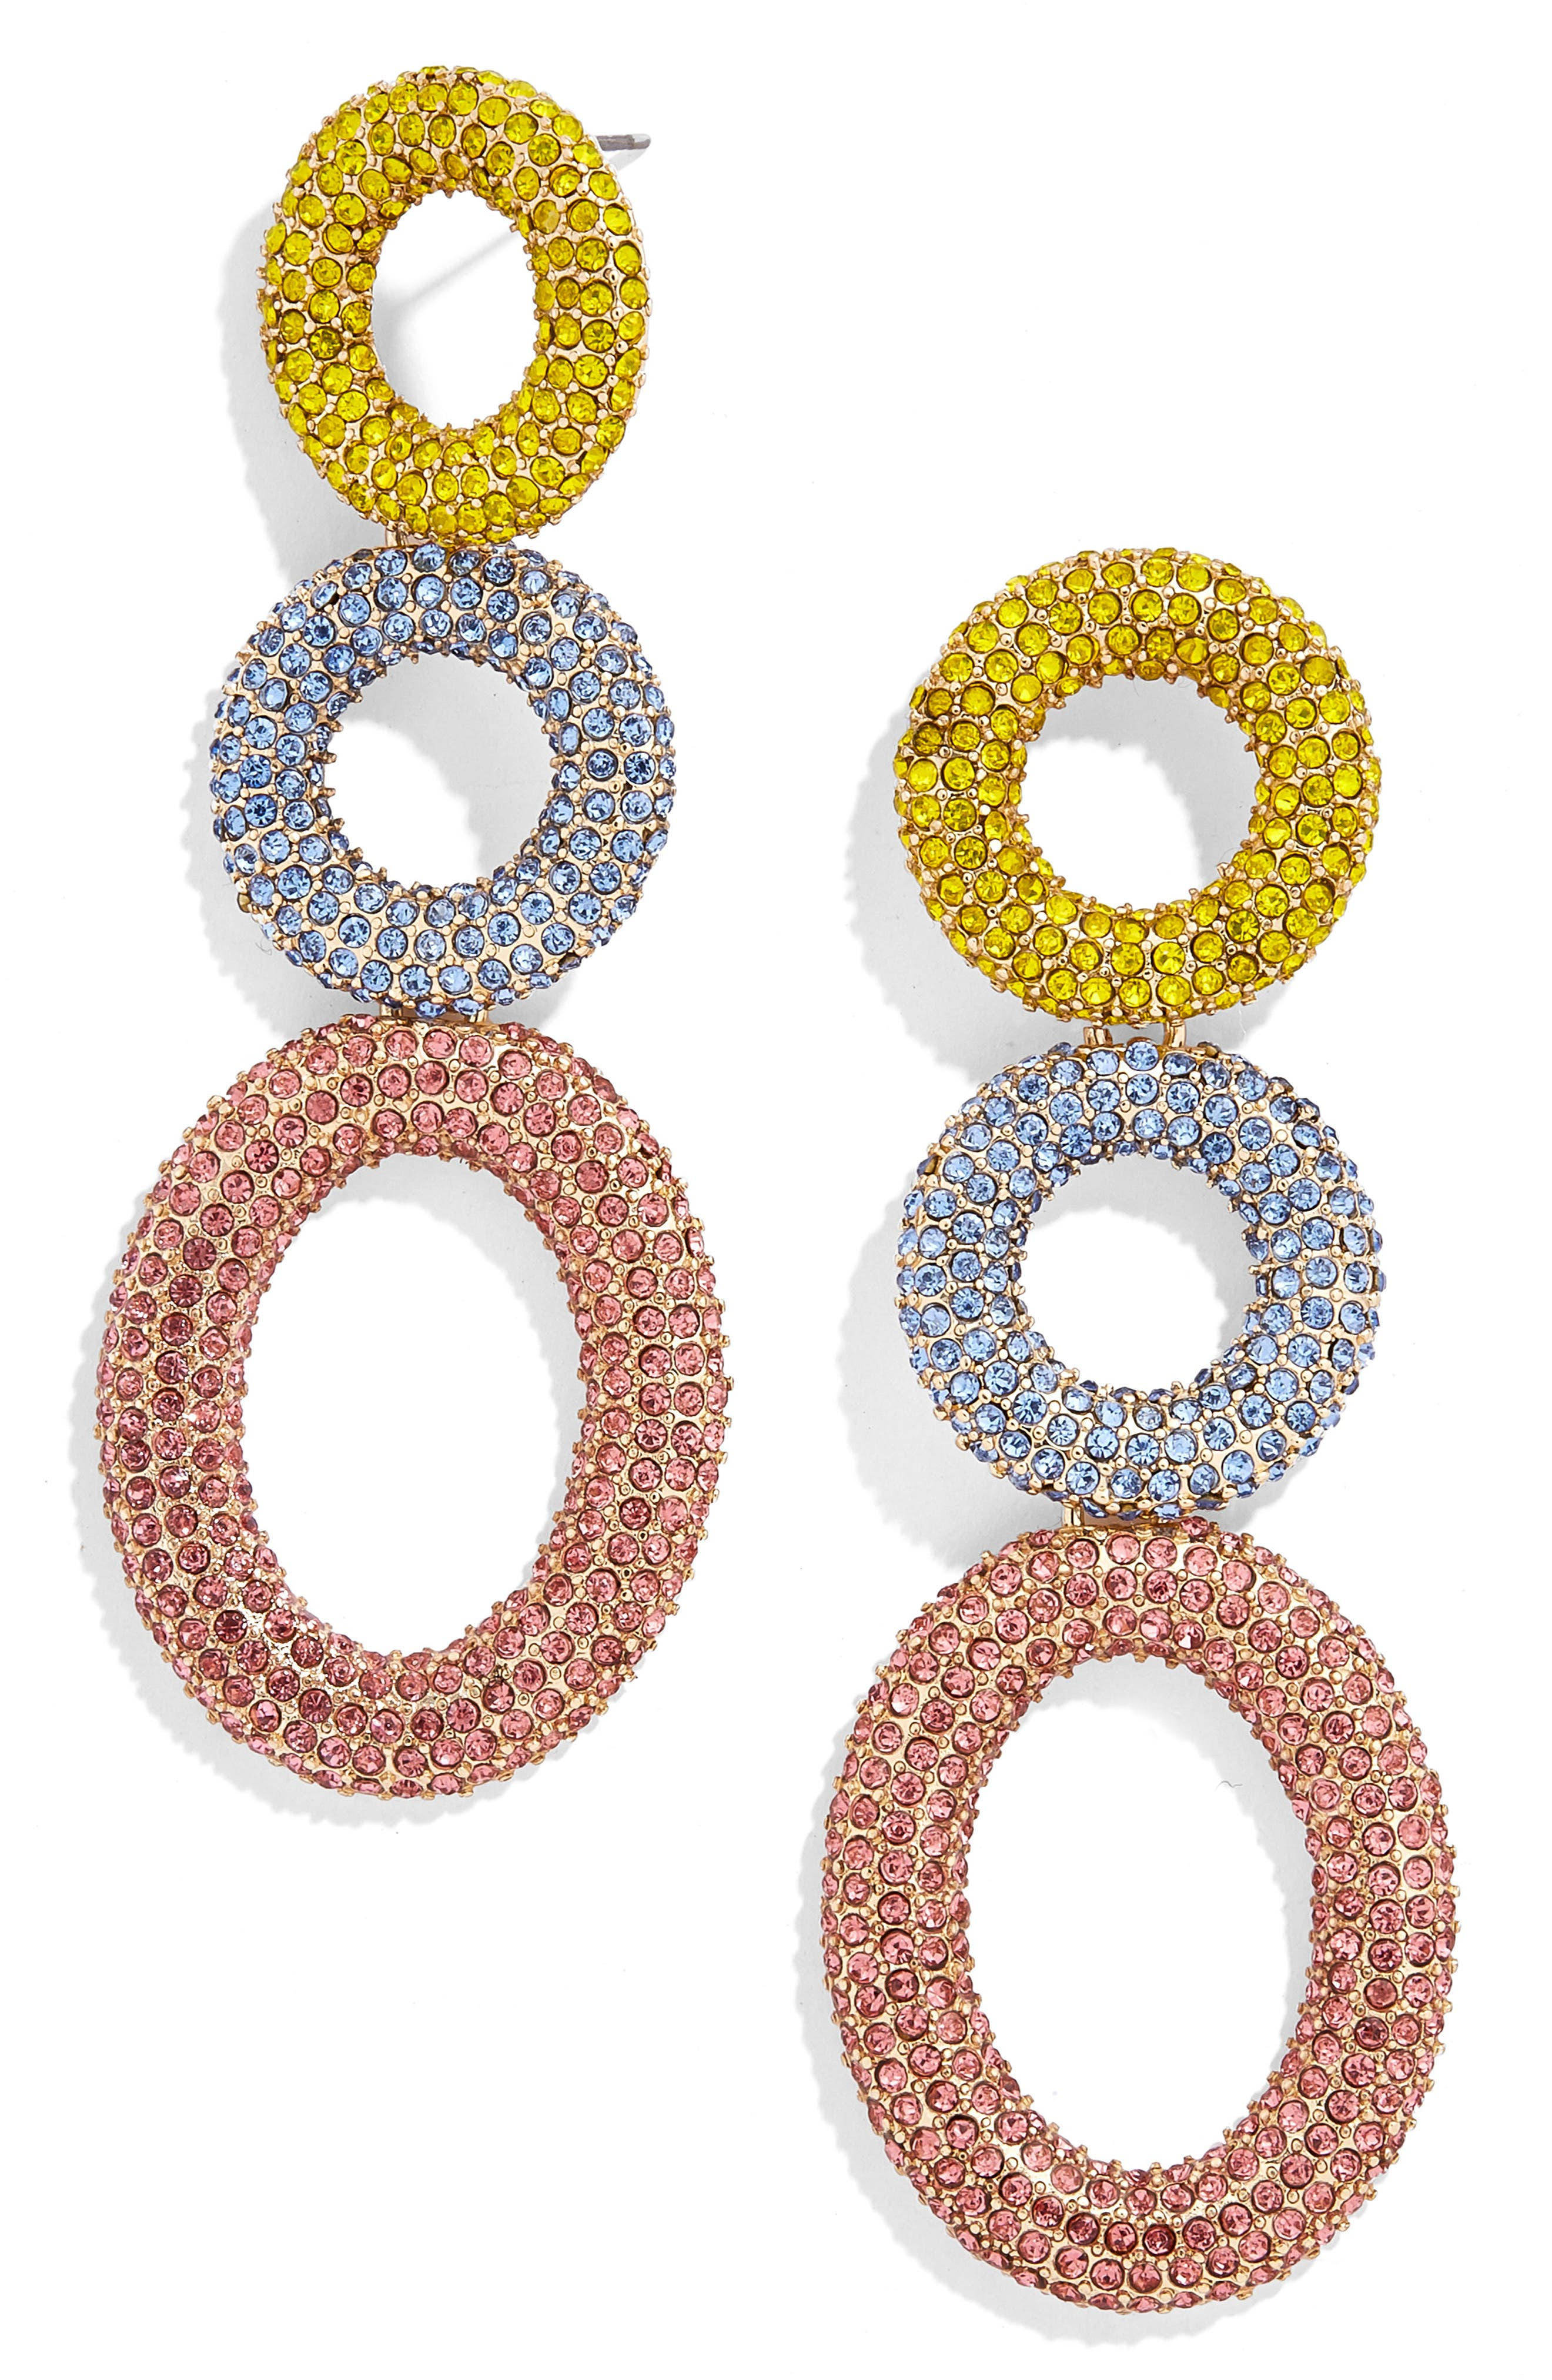 Mimi Tiered Drop Earrings,                         Main,                         color, YELLOW/ LAVENDER/ PINK